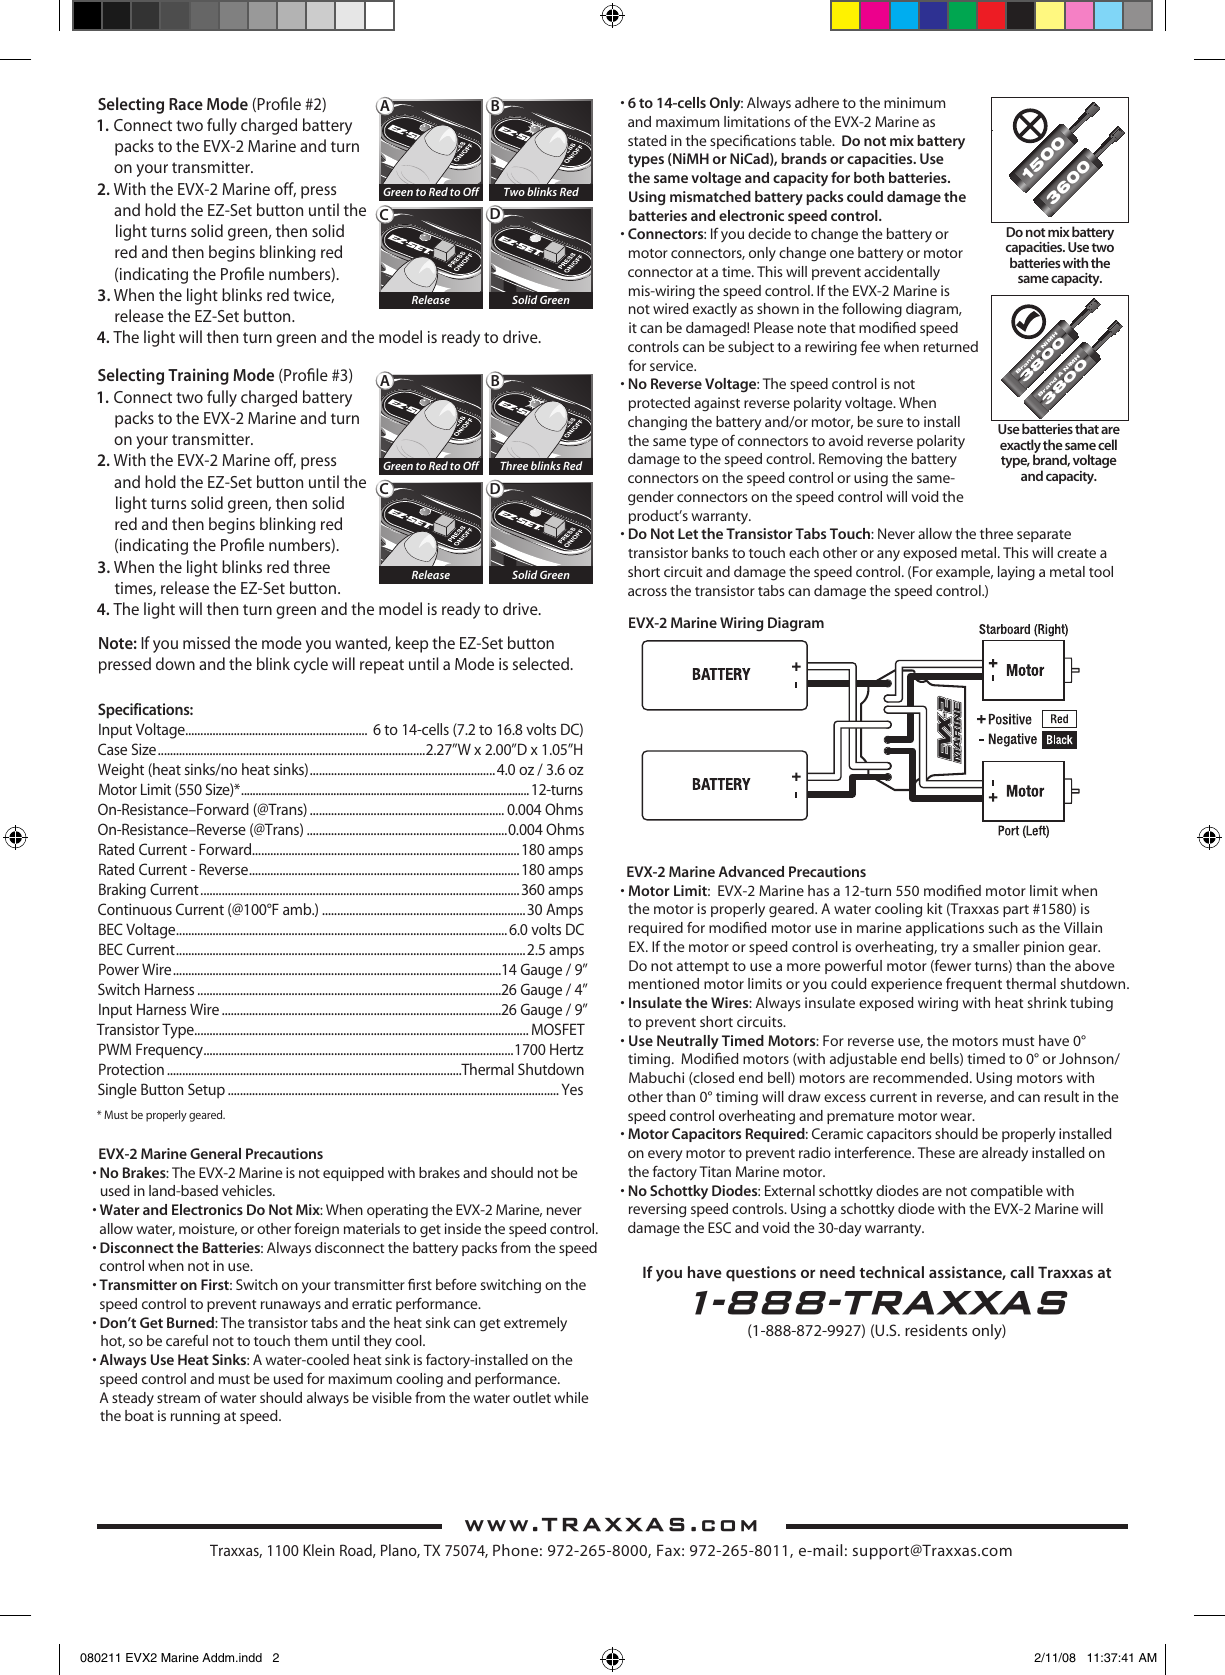 Traxxas Printer Evx 2 Users Manual Wiring Diagram Page Of